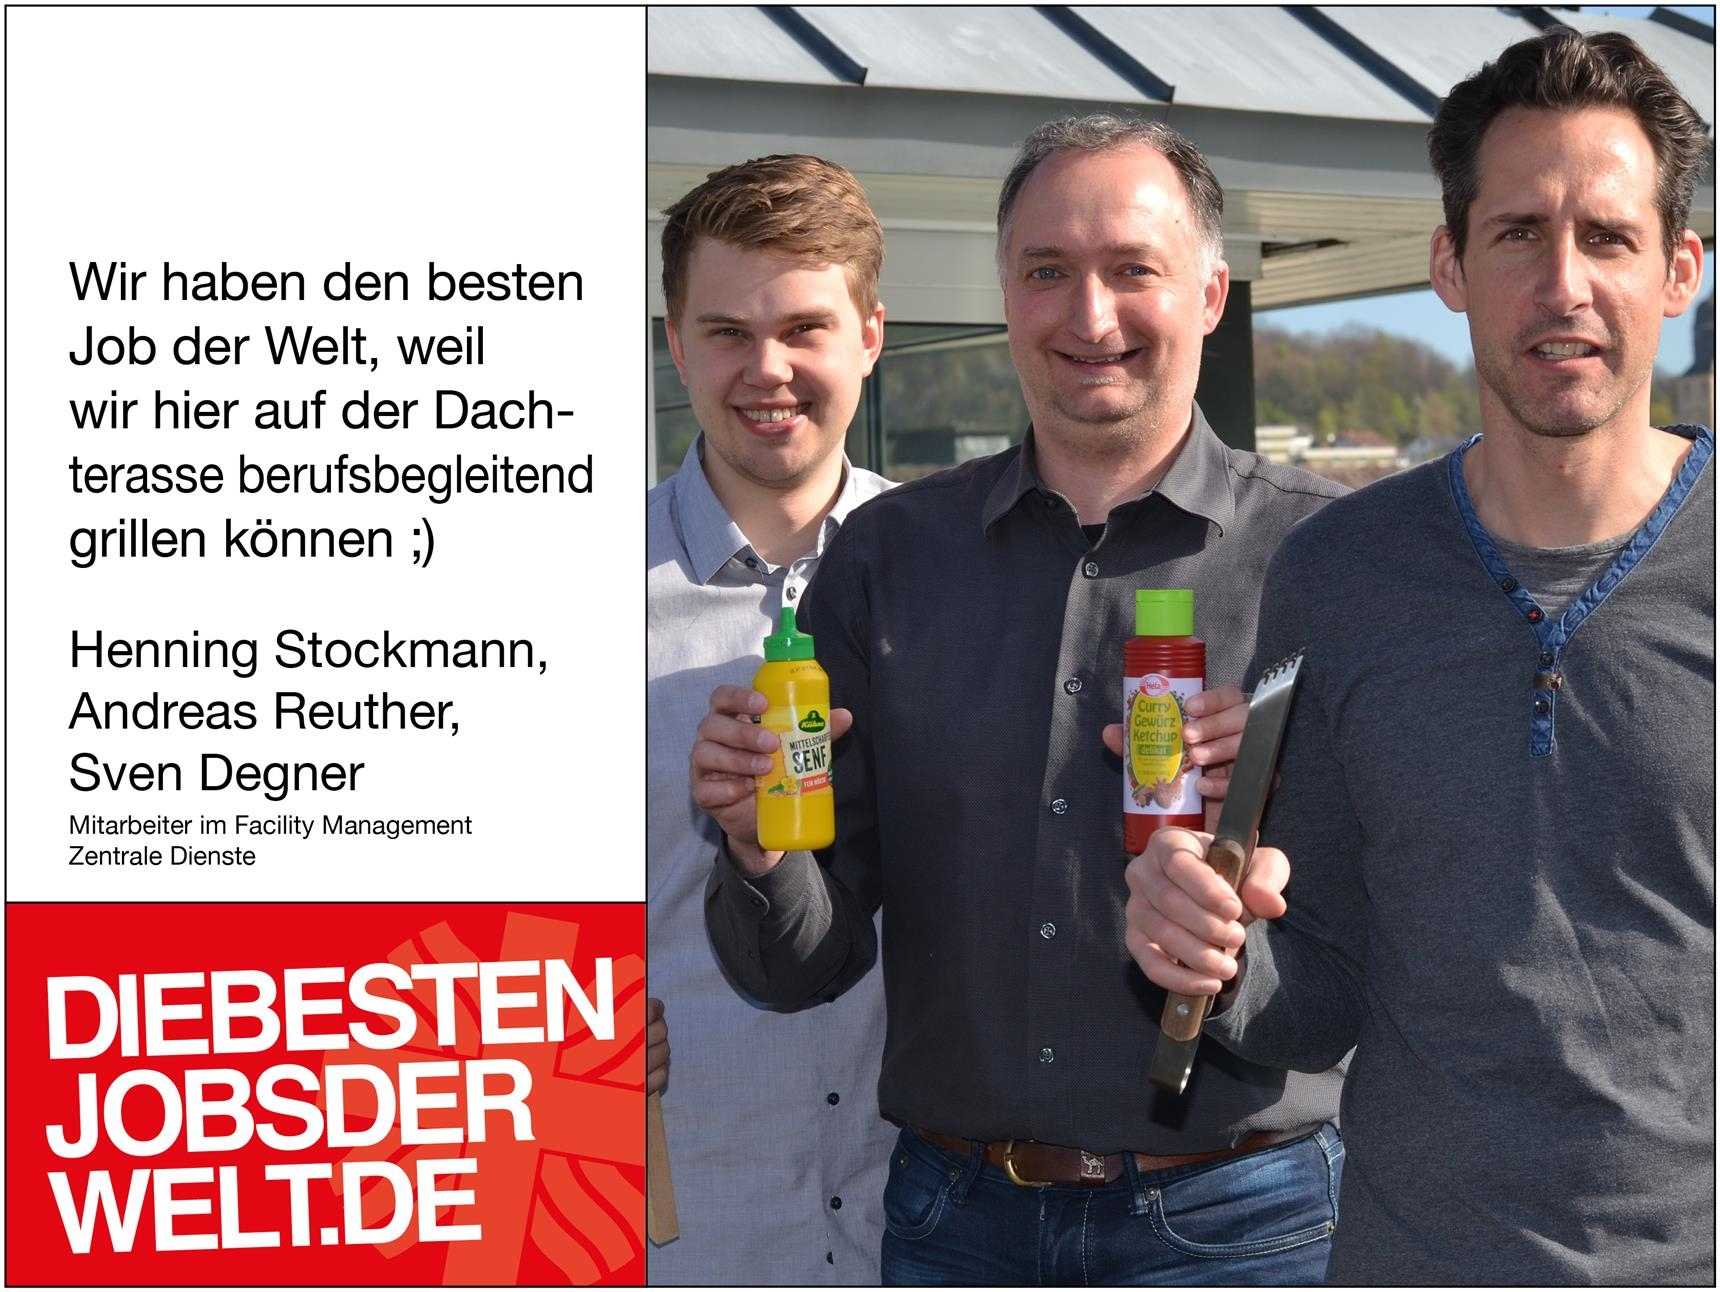 diebestenjobsderwelt - Reuther - Degner - Stockmann